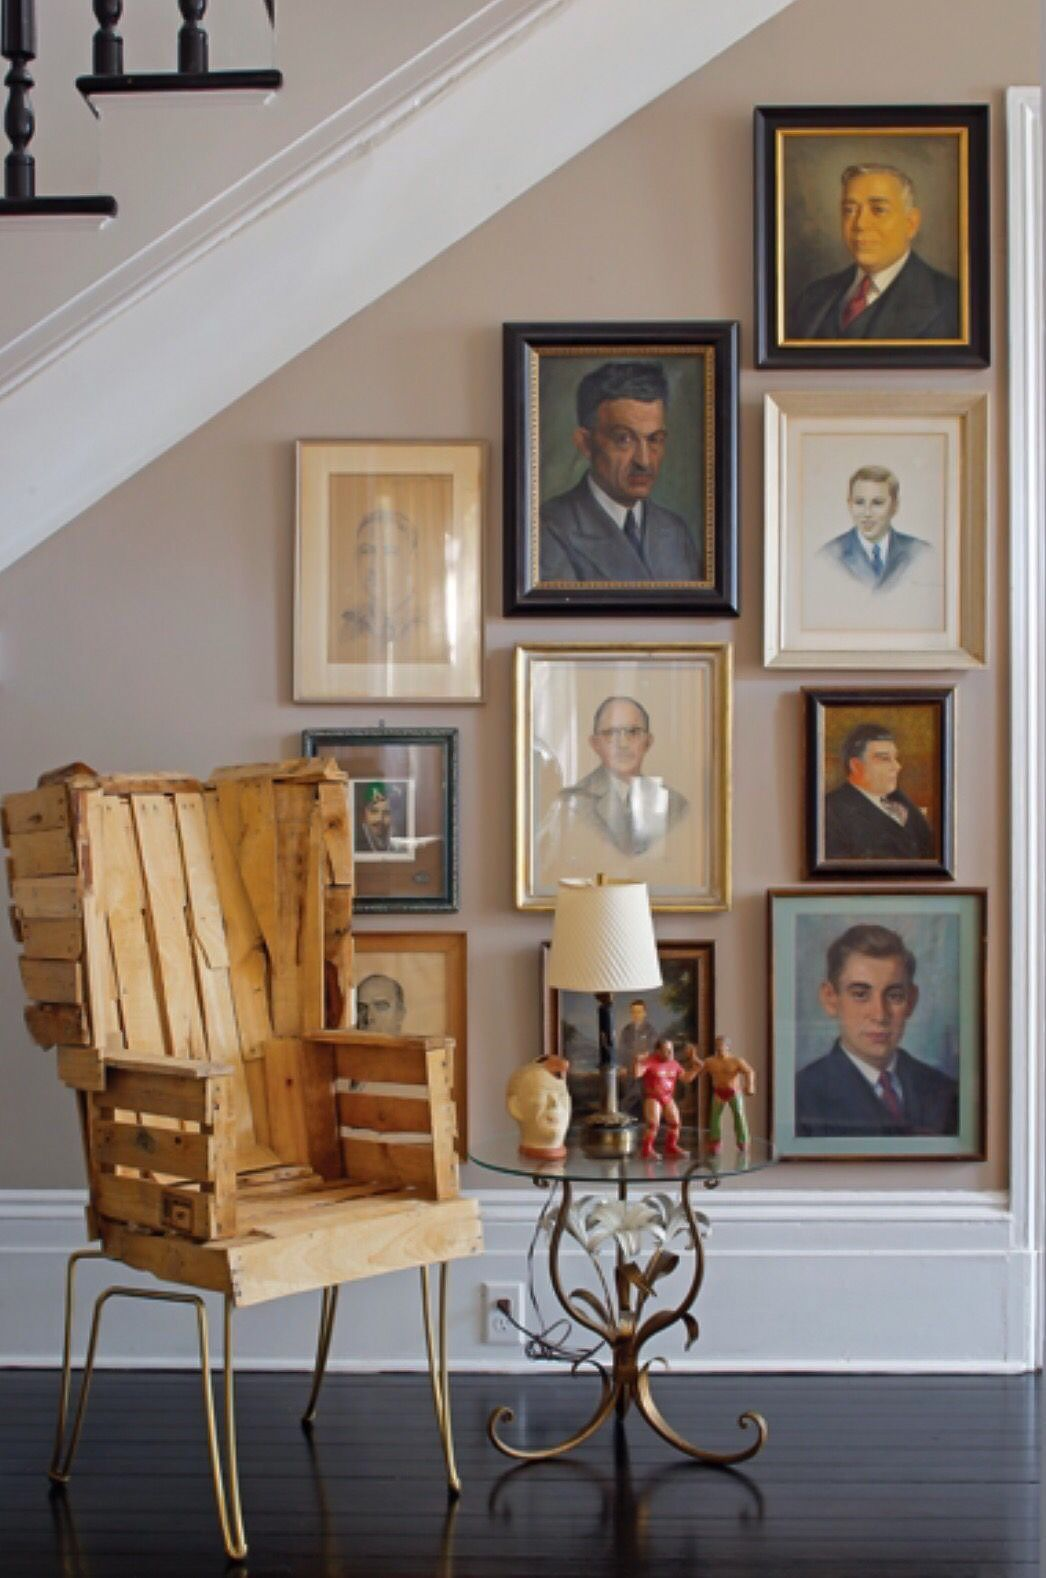 Arrangement Under Stairs Gallery Wall Of Painted Portraits